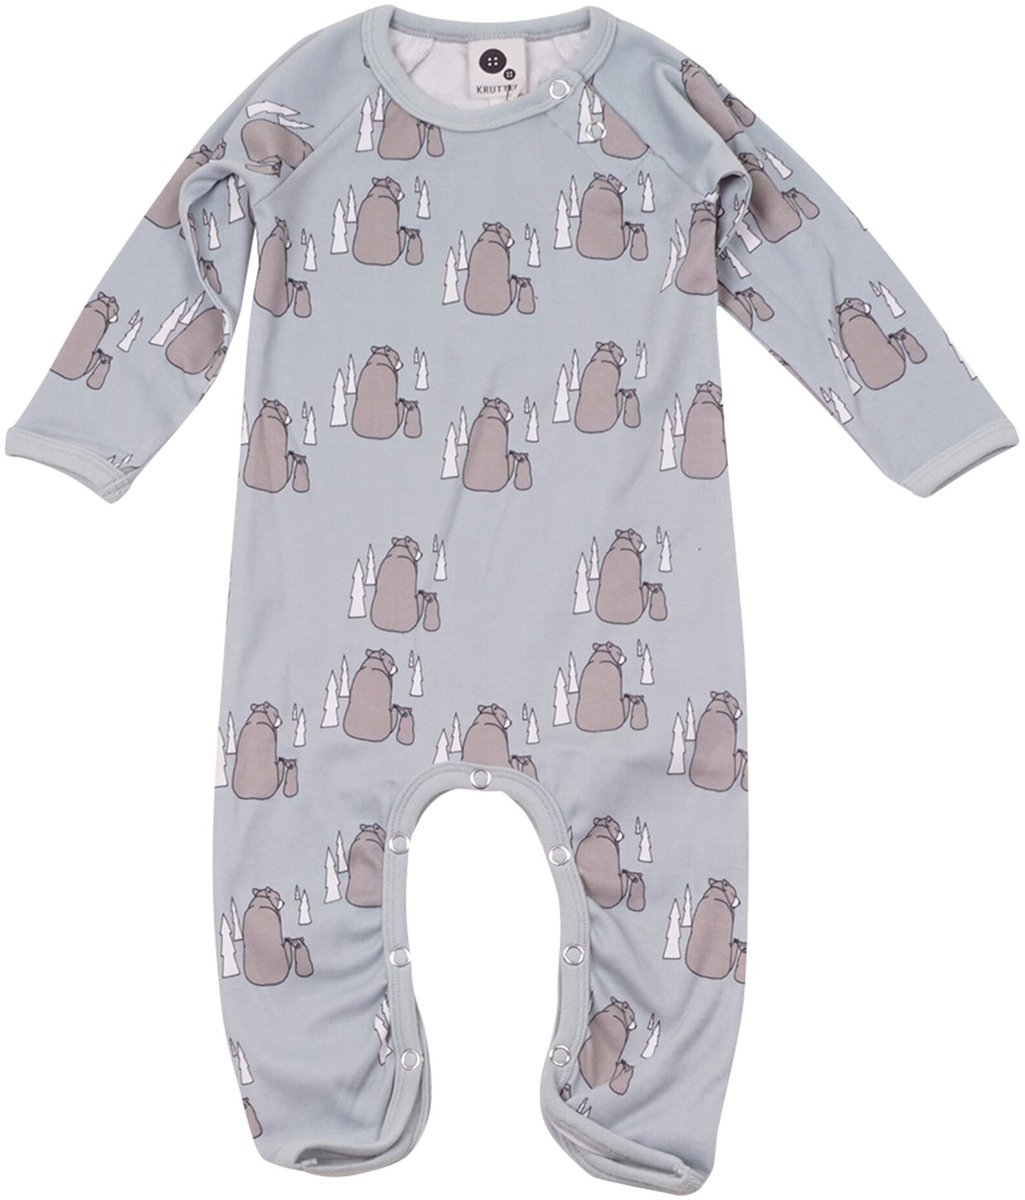 Krutter Bear Family One-Piece